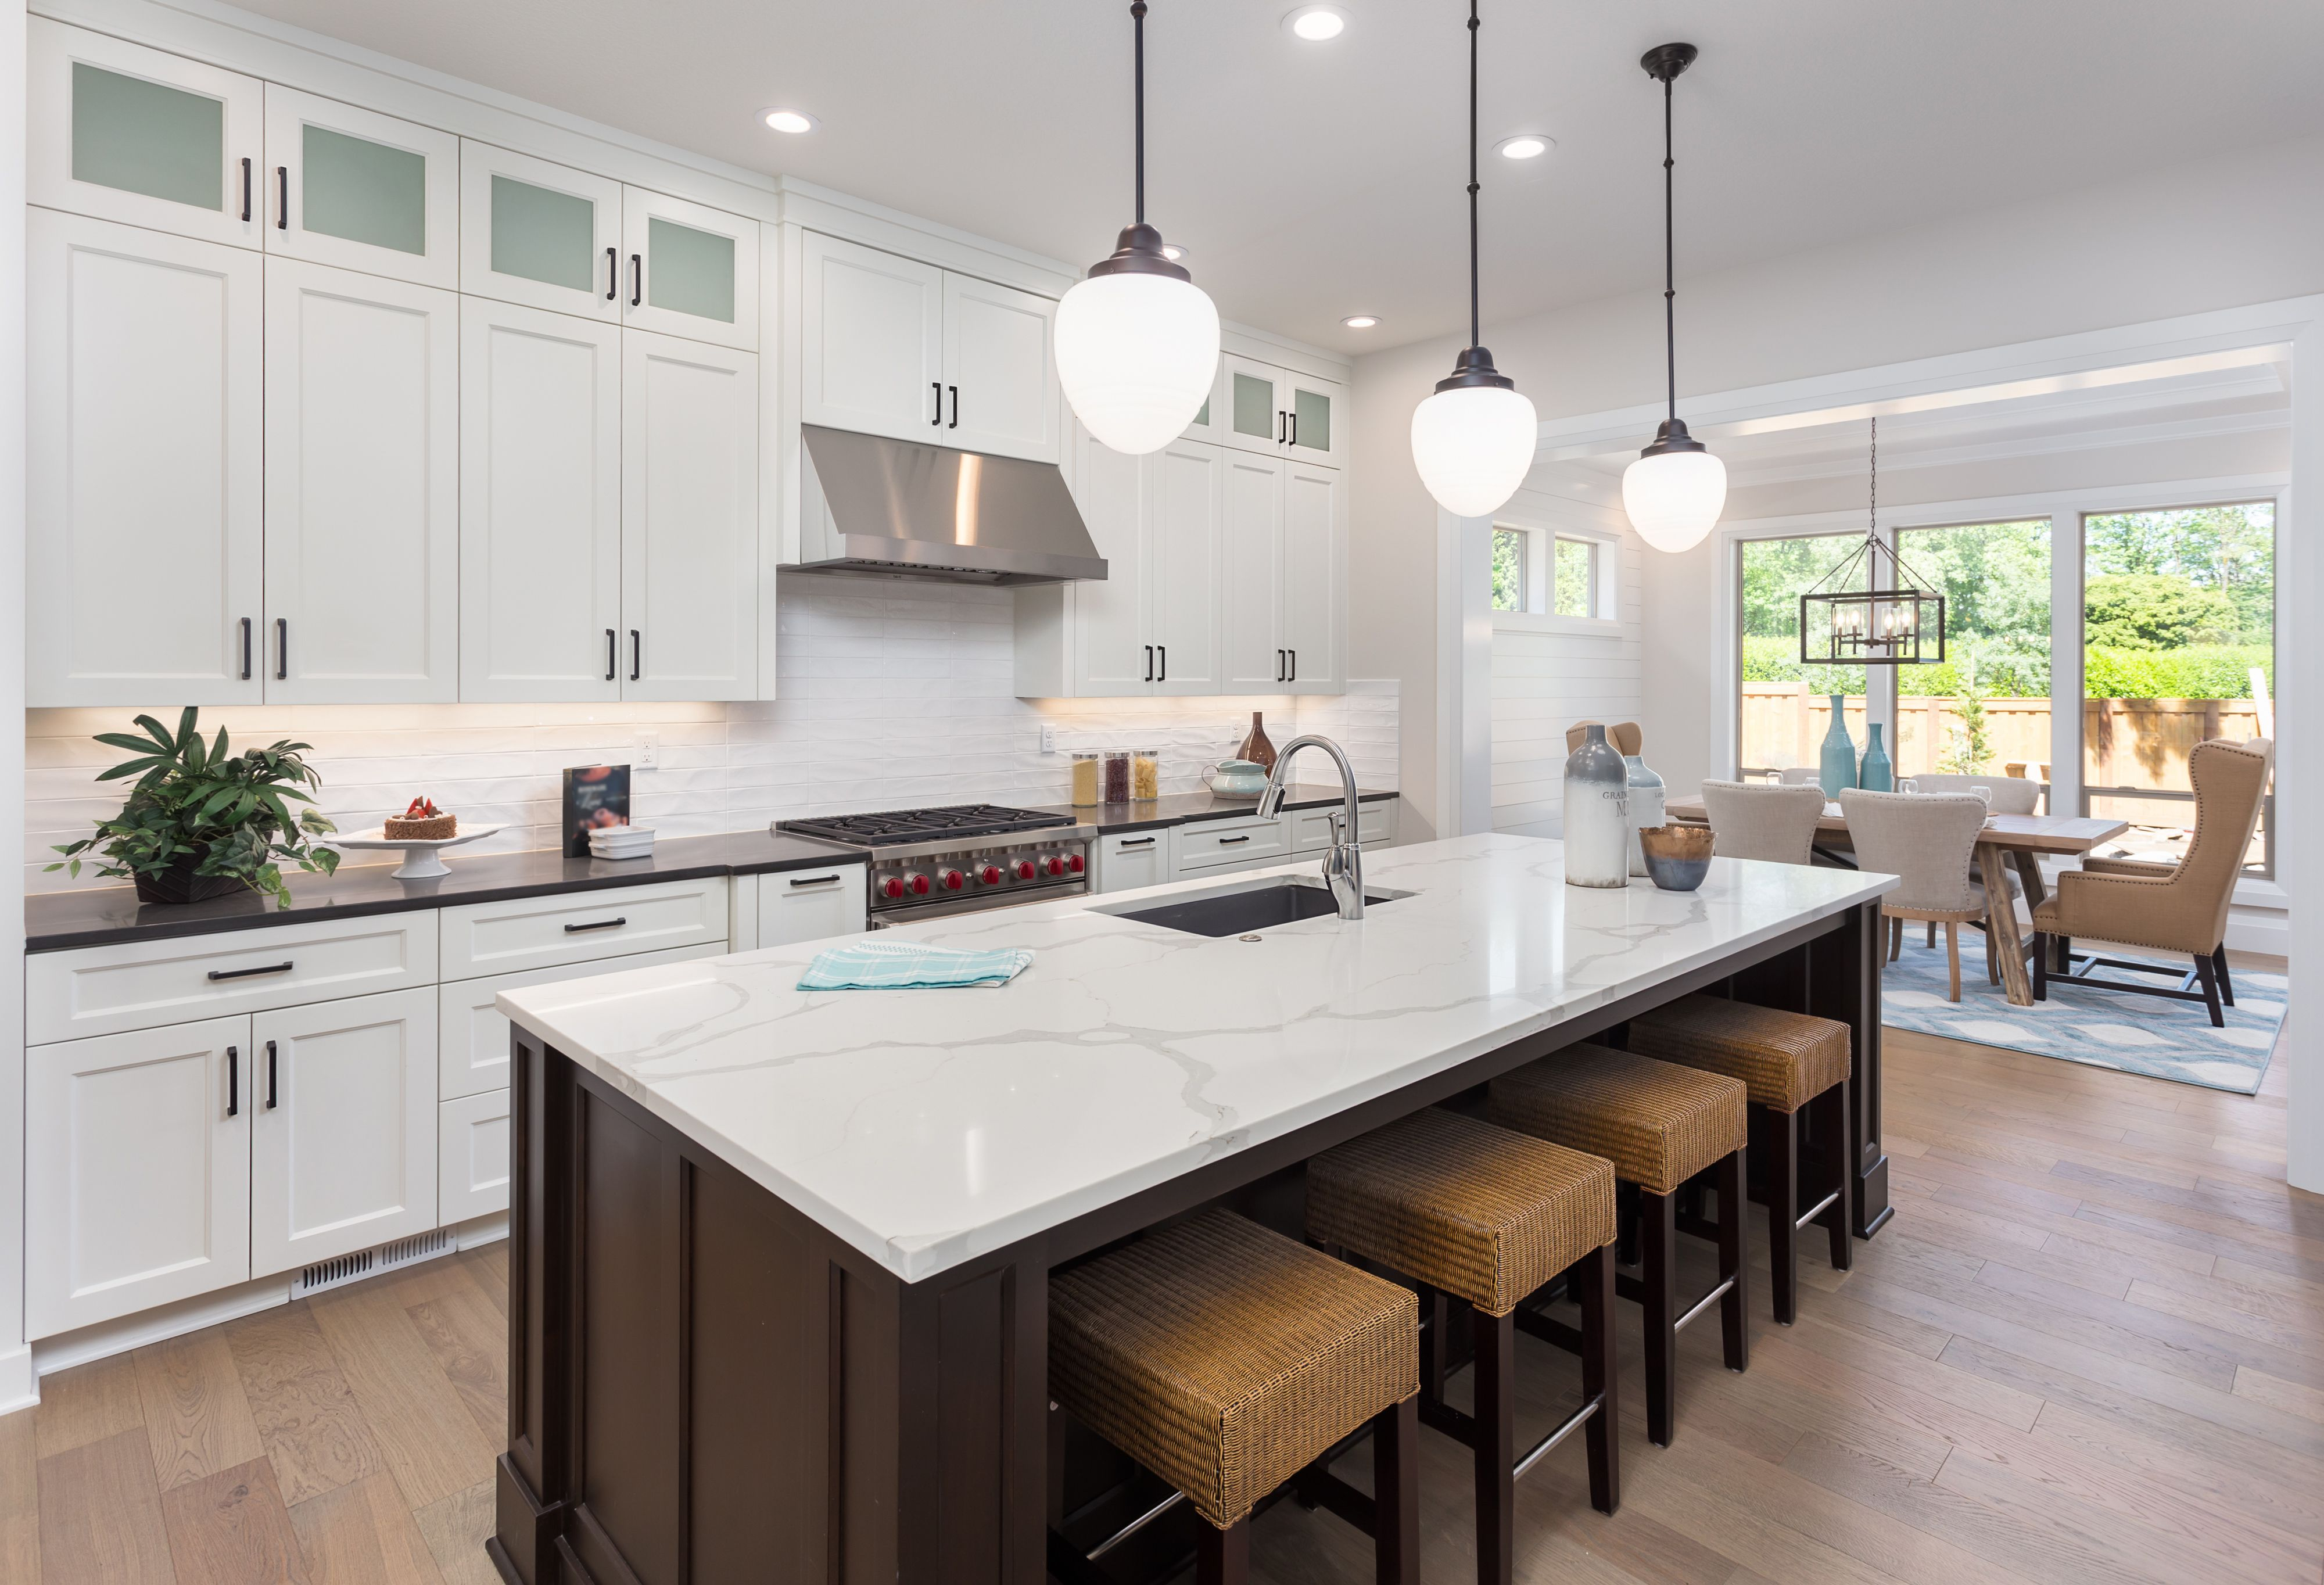 White Shaker Cabinets With Dark Island Kitchen Remodel Layout Kitchen Remodel Small Kitchen Design Small